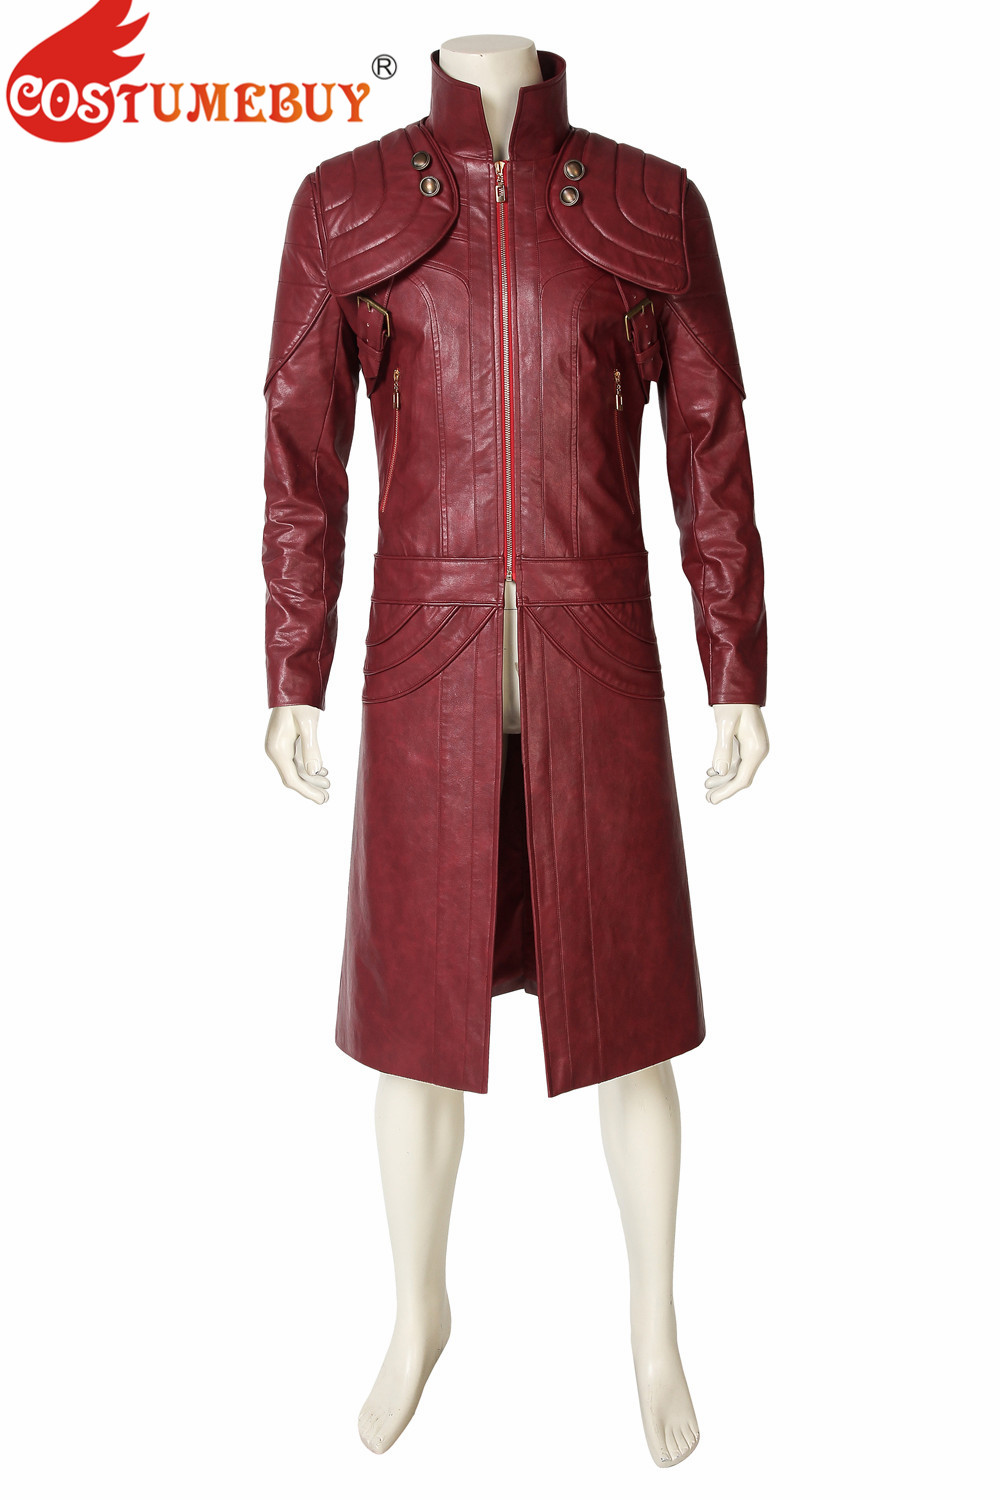 CostumeBuy Game Devil May Cry 5 Cosplay DMC5 Dante Costume PU Leather Jacket Trench Mysterious Man Fancy Coat Halloween Outfit